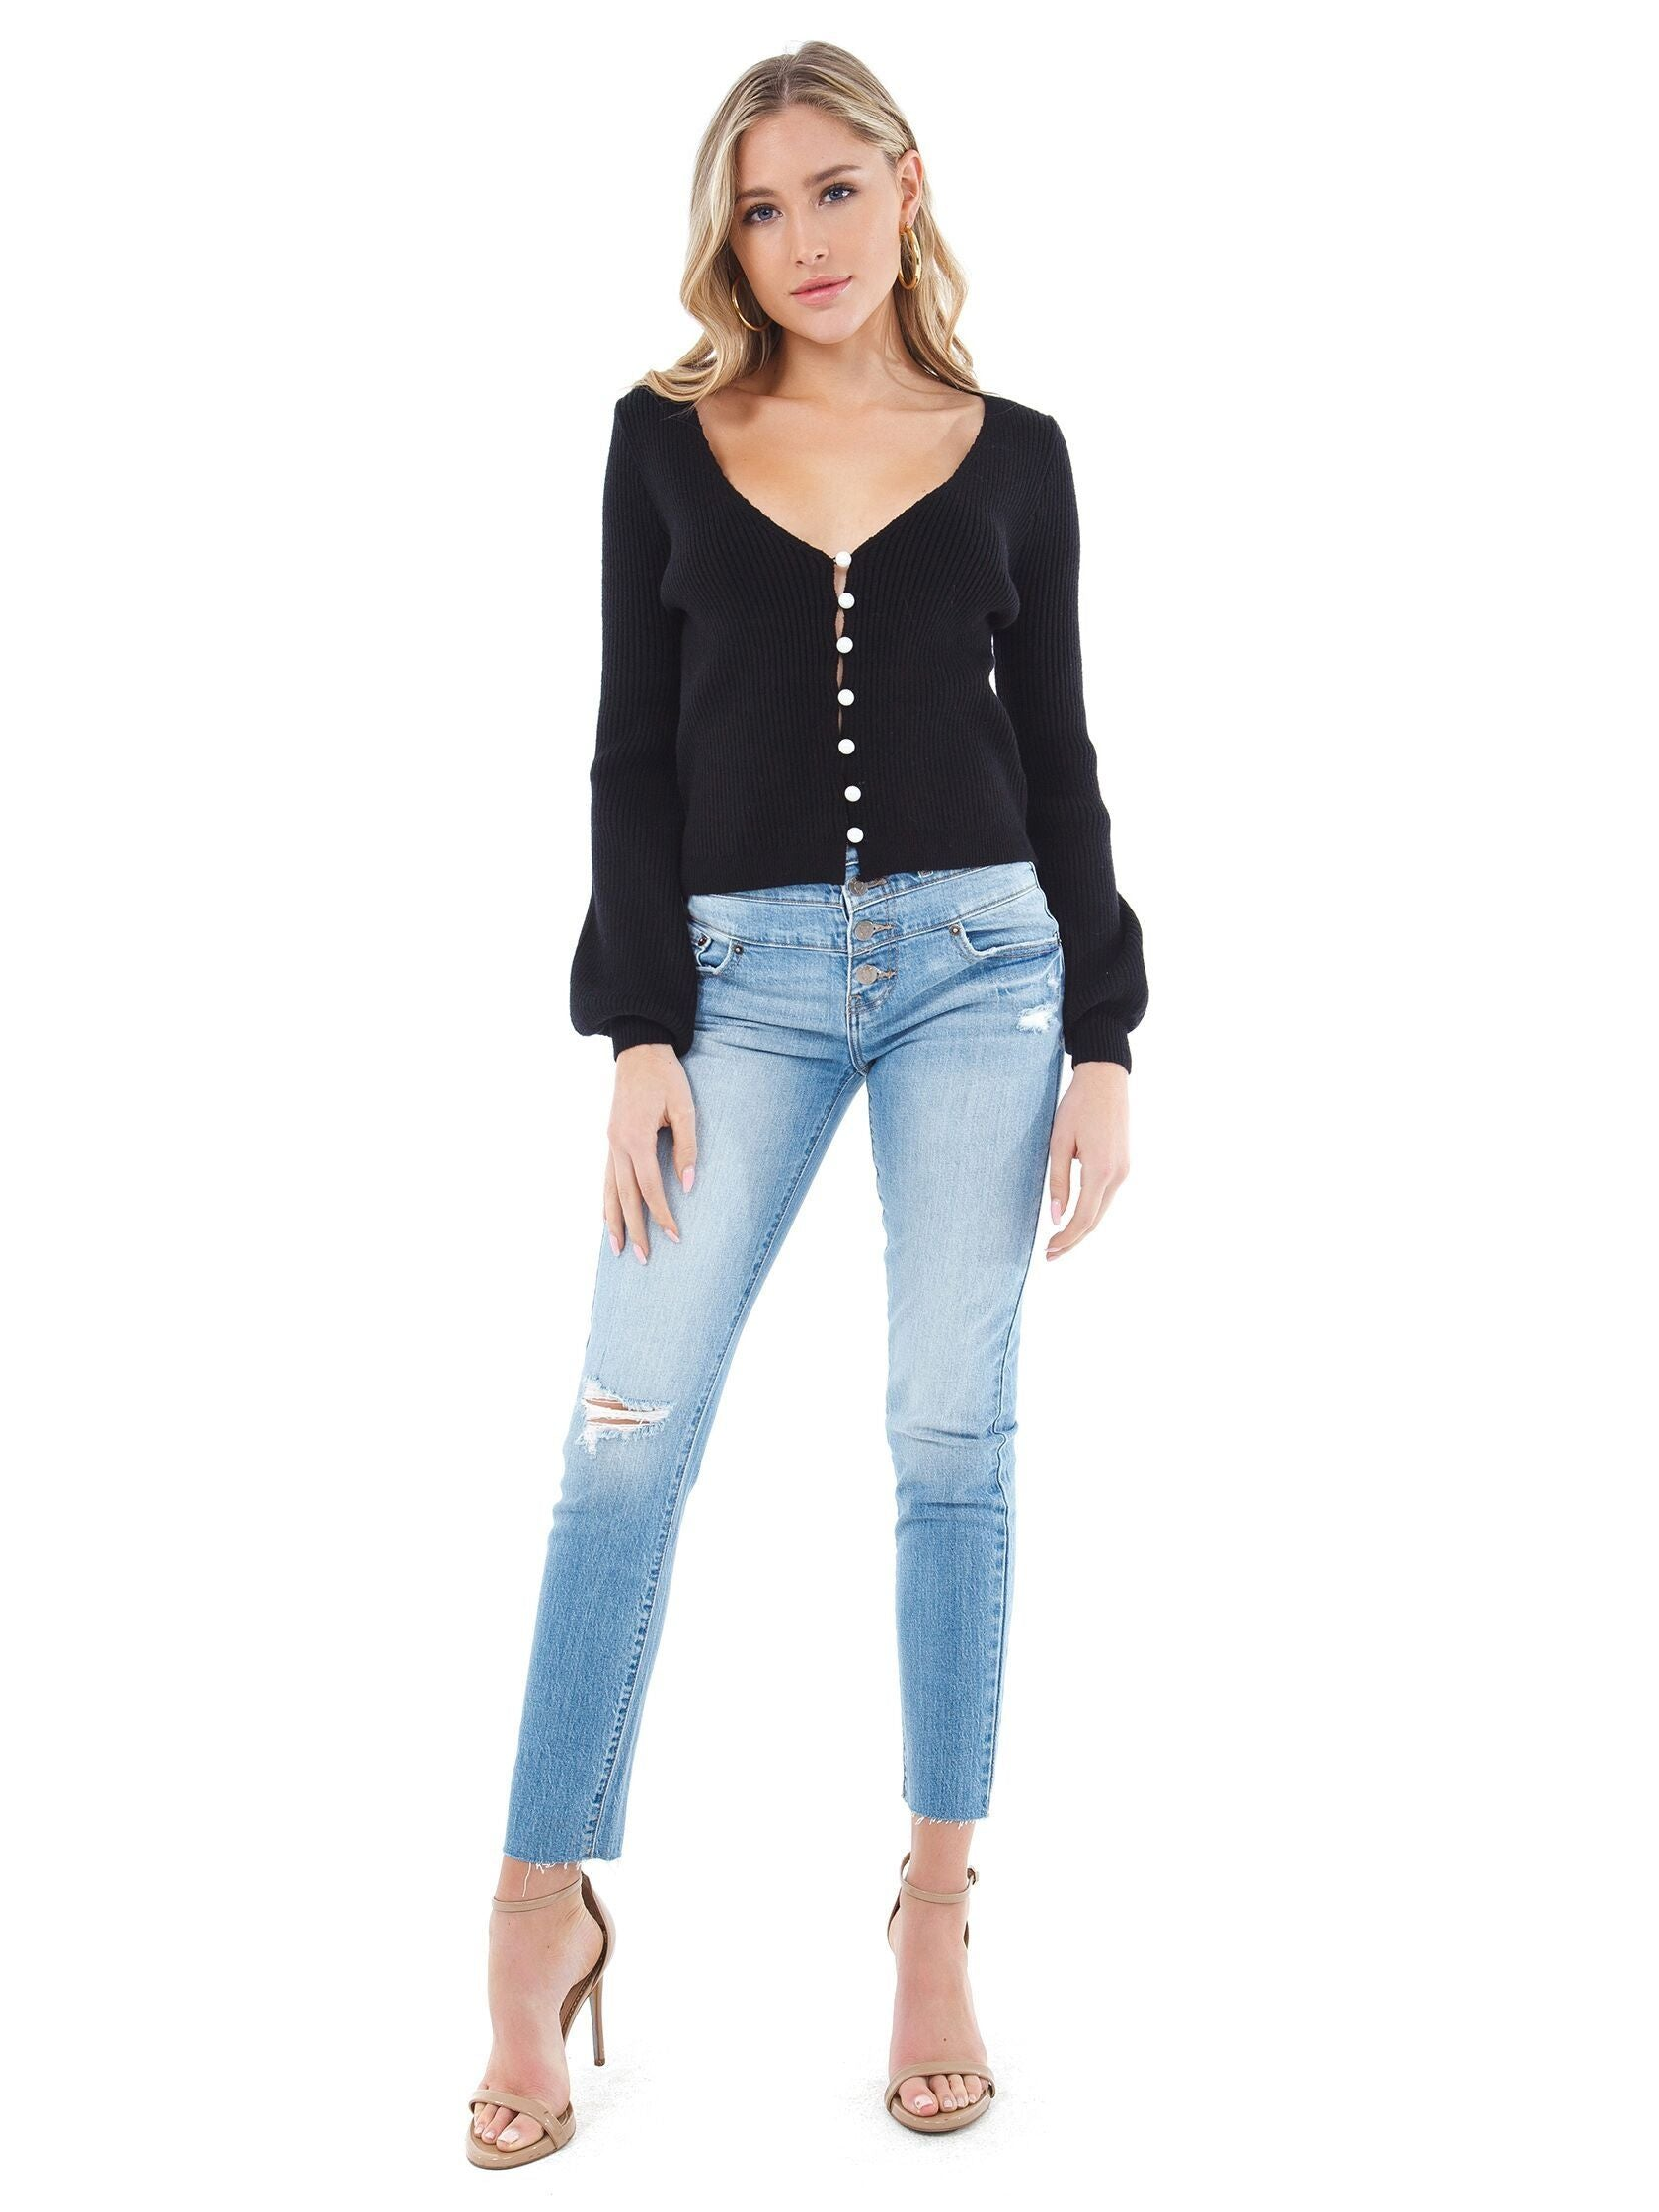 Charlie Holiday Rentals Tula Cardigan Fashionpass Skip to main search results. charlie holiday rentals tula cardigan